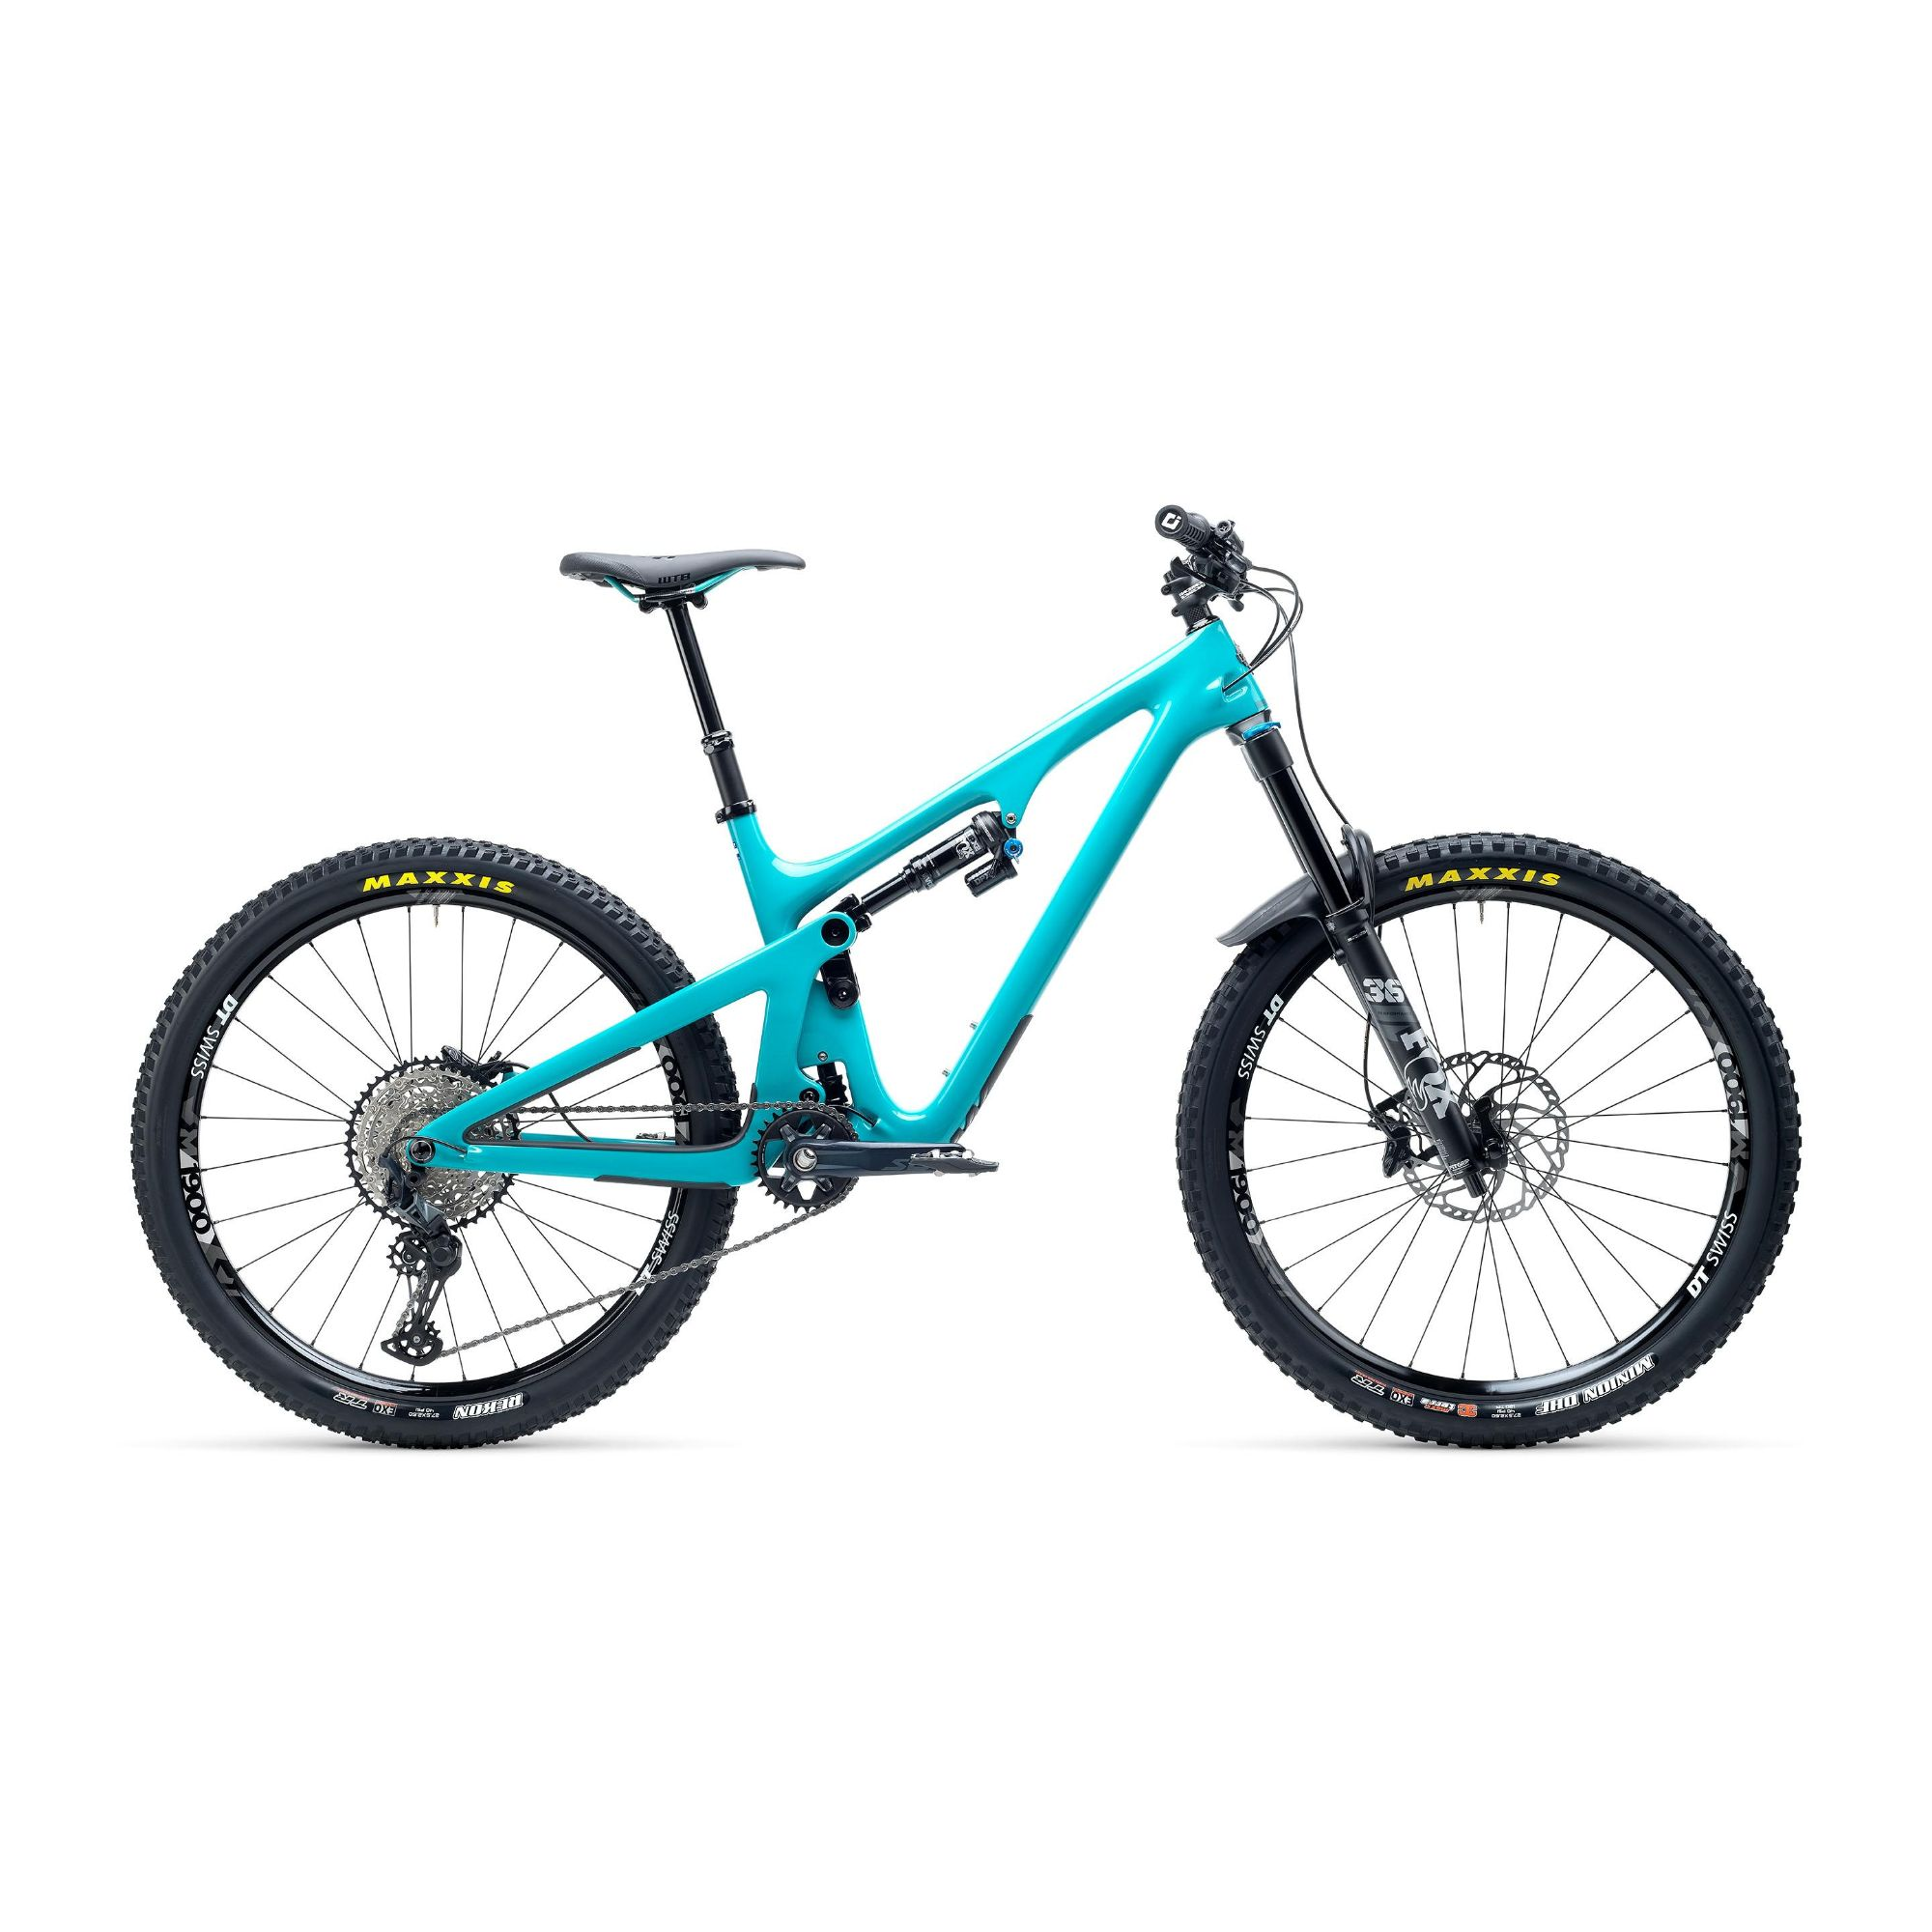 Yeti SB140 CSeries C1 27.5 SLX 12spd Carbon Mountain Bike 2021 Turq